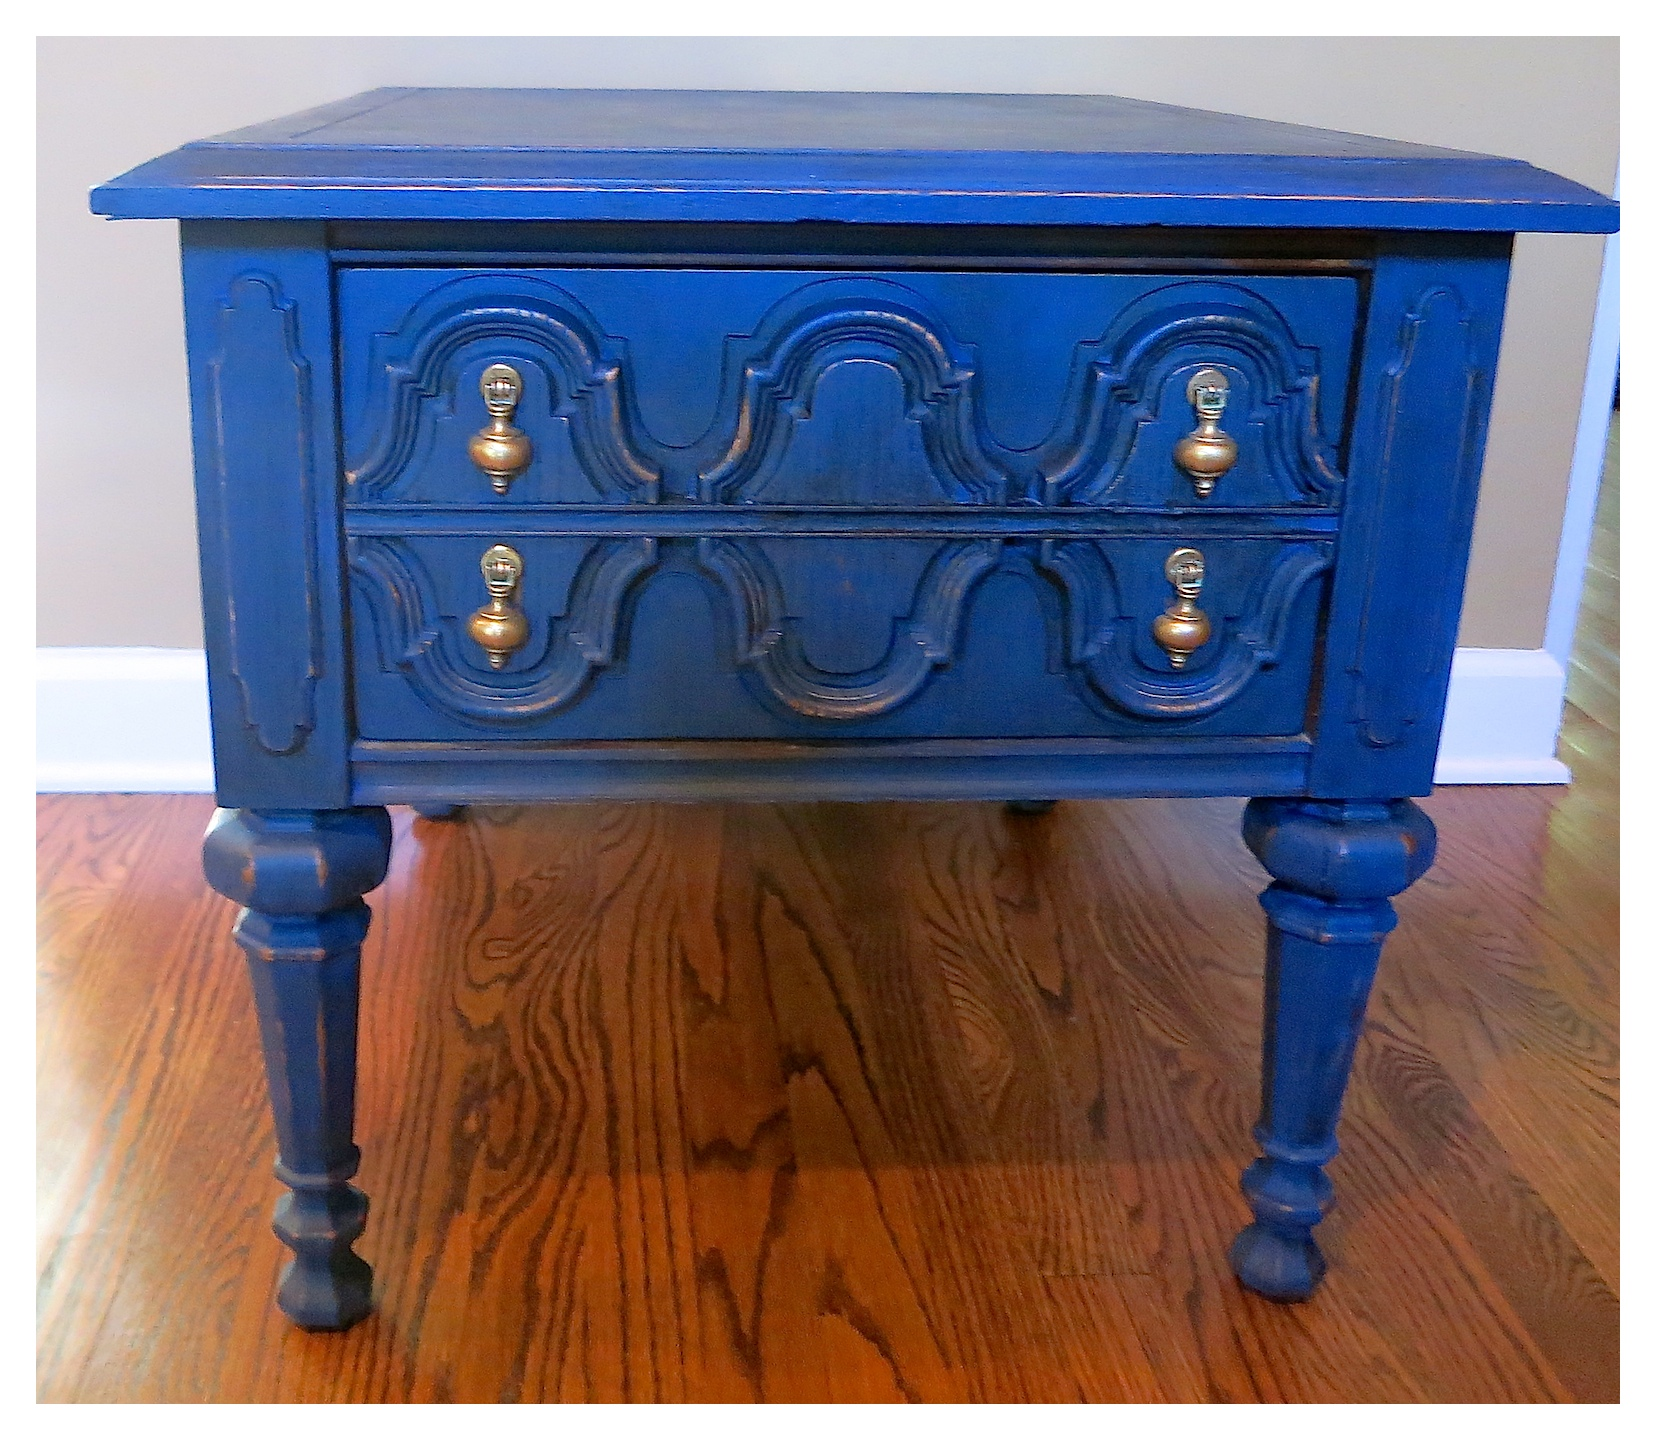 blue painted end table makeover bees pod img tables don usually paint with dark bright colors but will now think our turned out great small round whalen industrial furniture